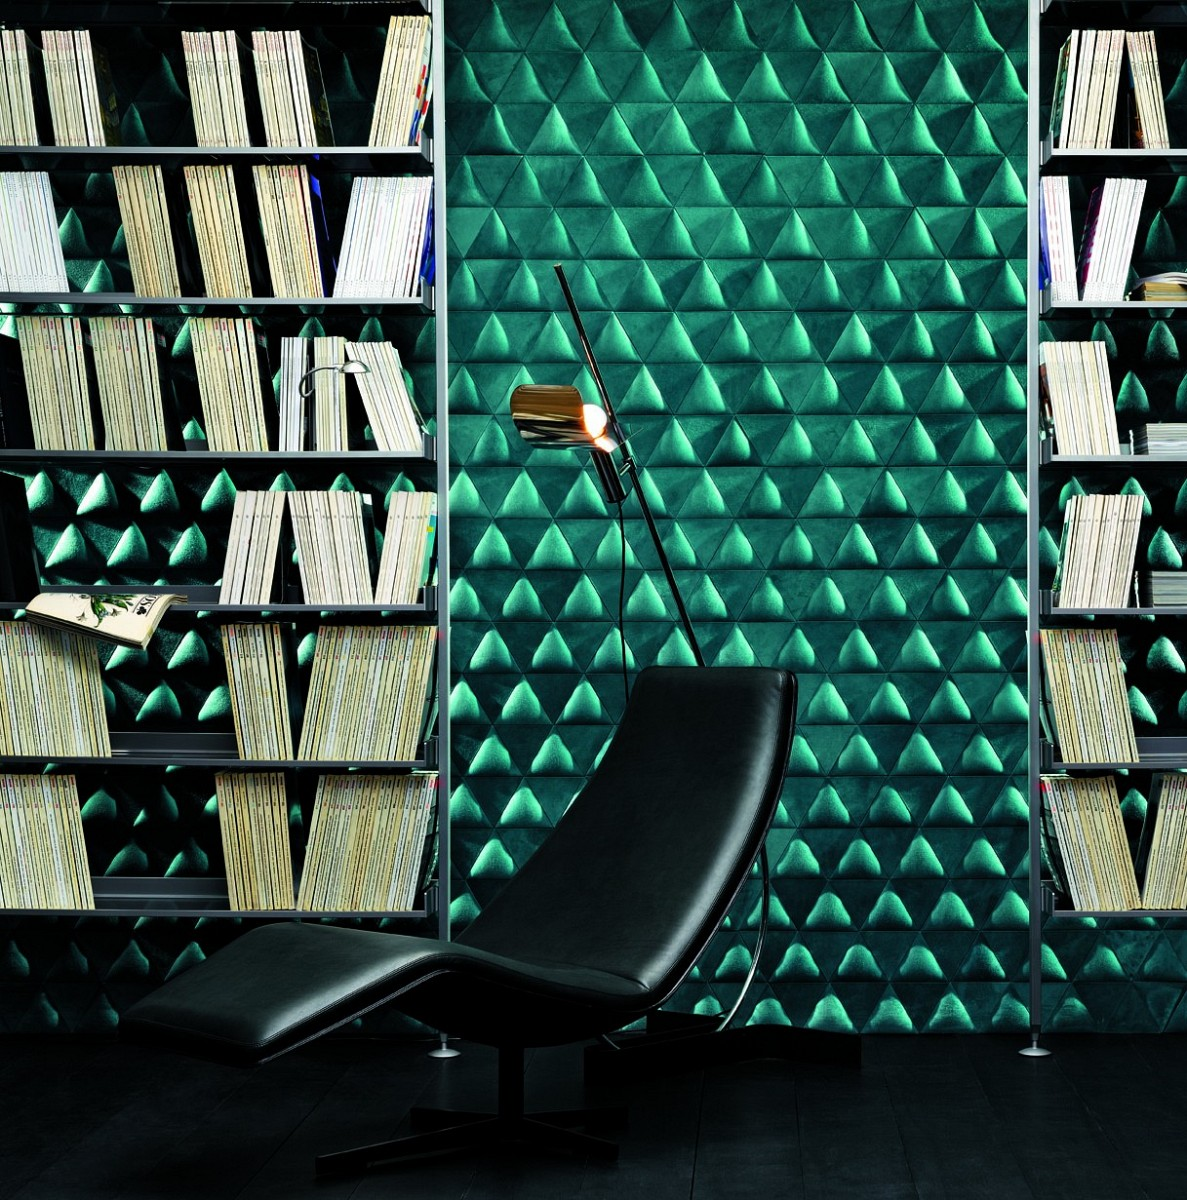 Green Triangular Wall Pattern